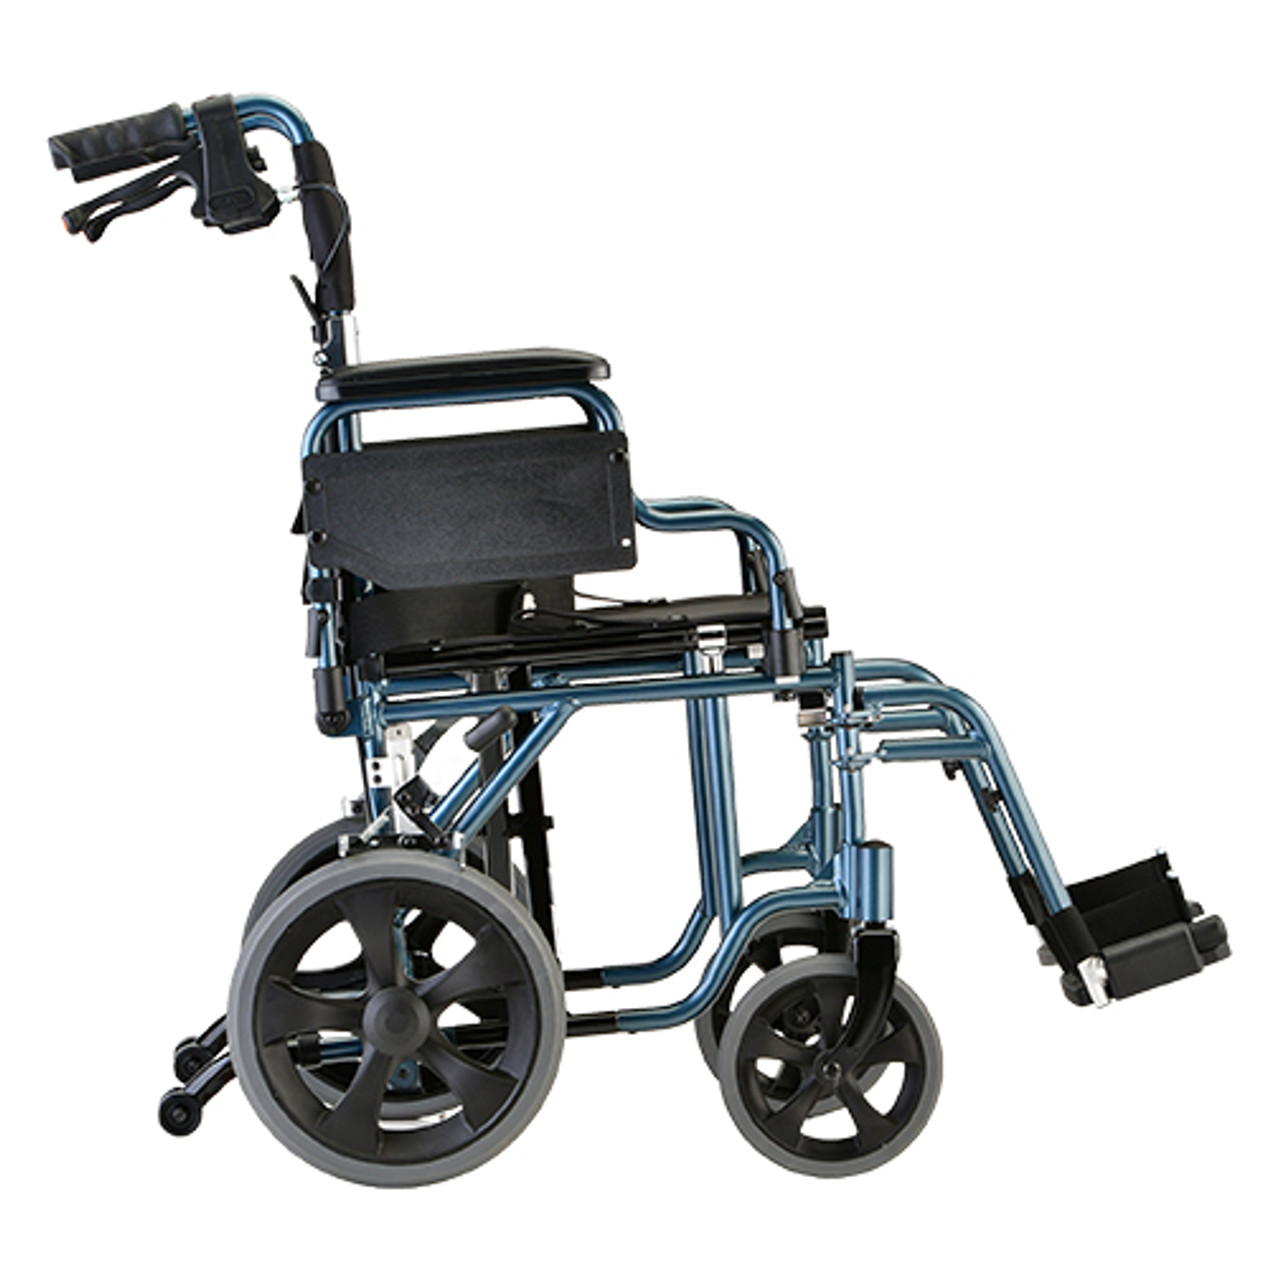 Nova model 352 19 inch transport chair with hand brakes profile view